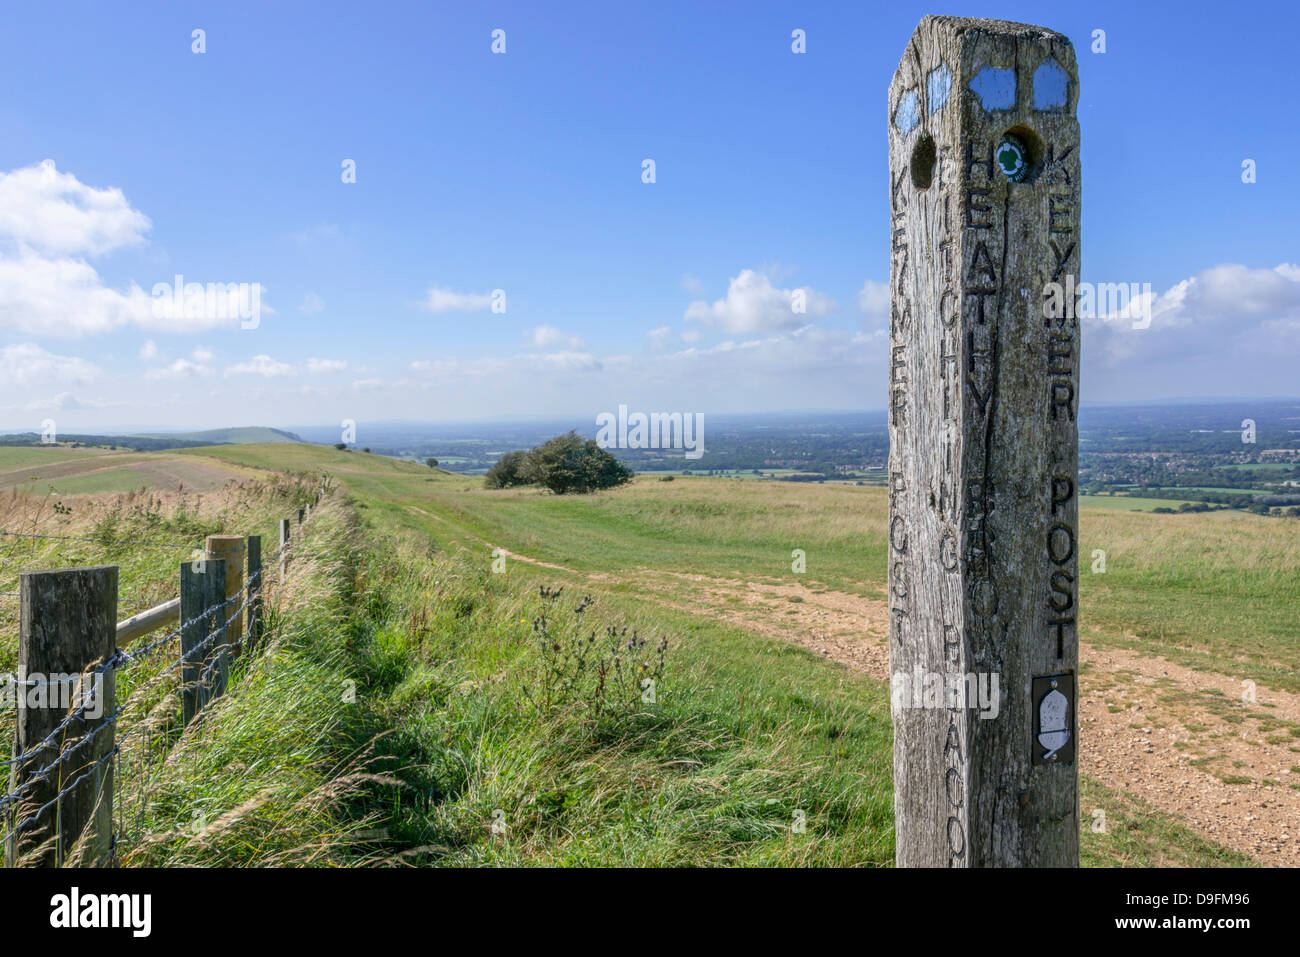 View from the South Downs Way footpath, Sussex, England, UK - Stock Image